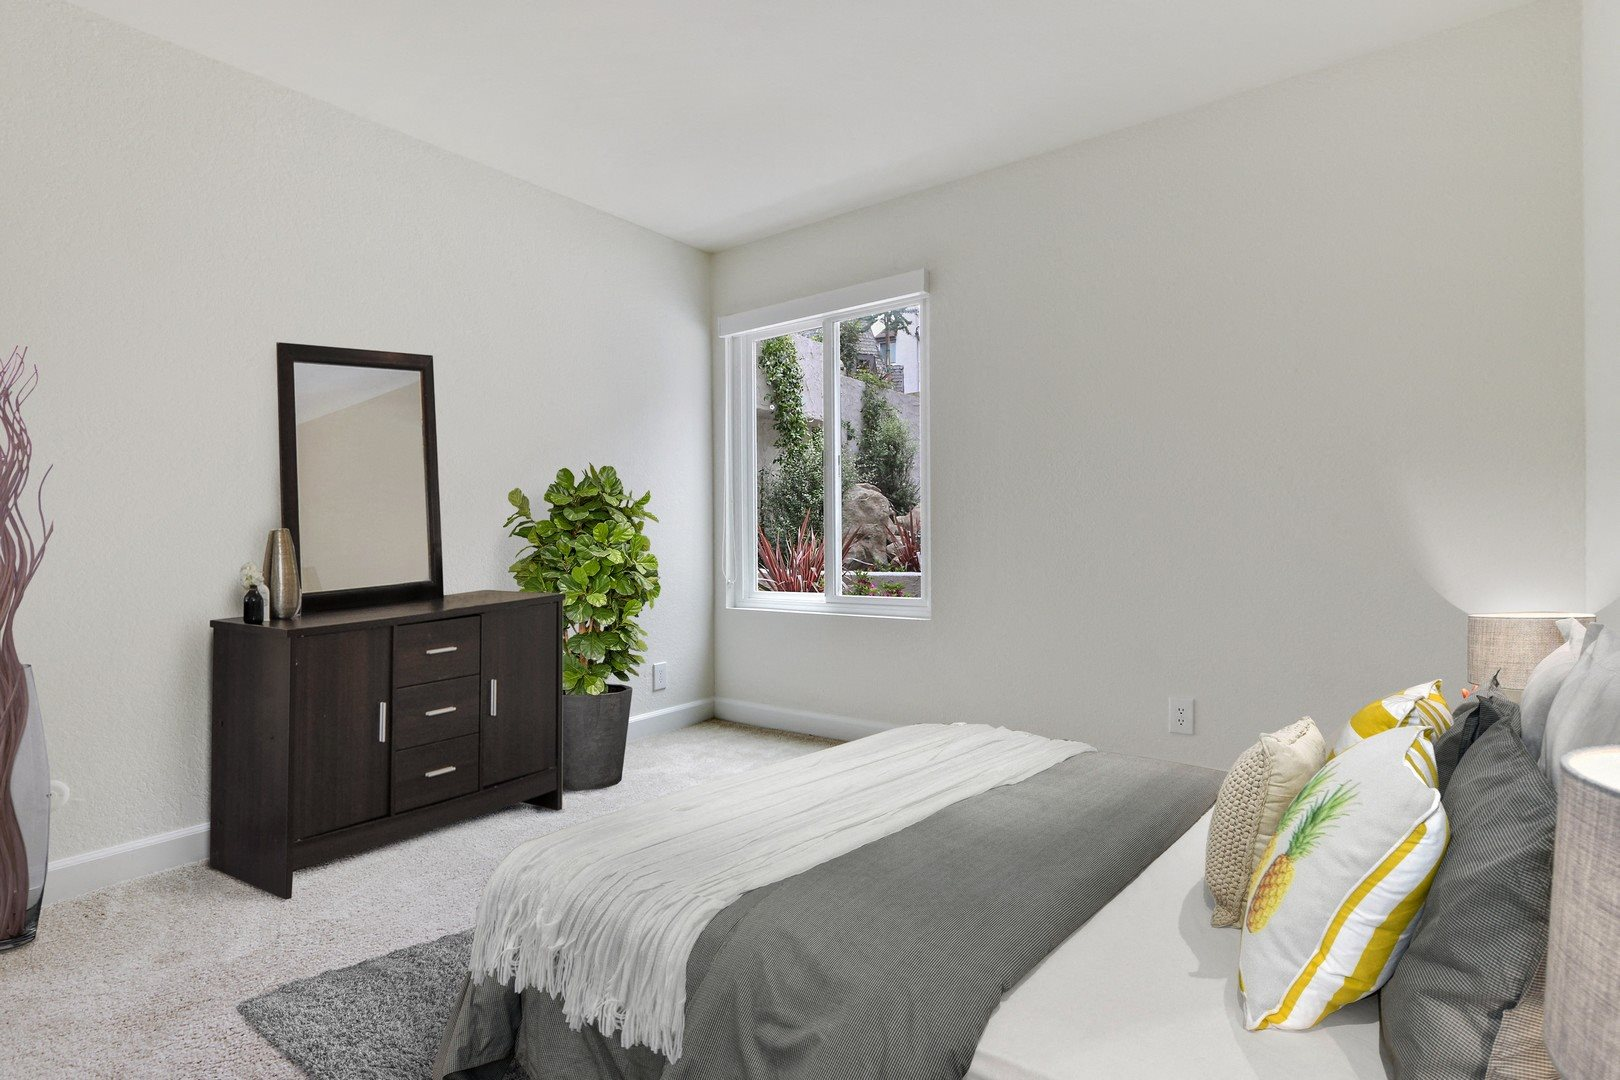 Bedroom at Woodcliff Apartments, 3201 Overland Avenue, Los Angeles